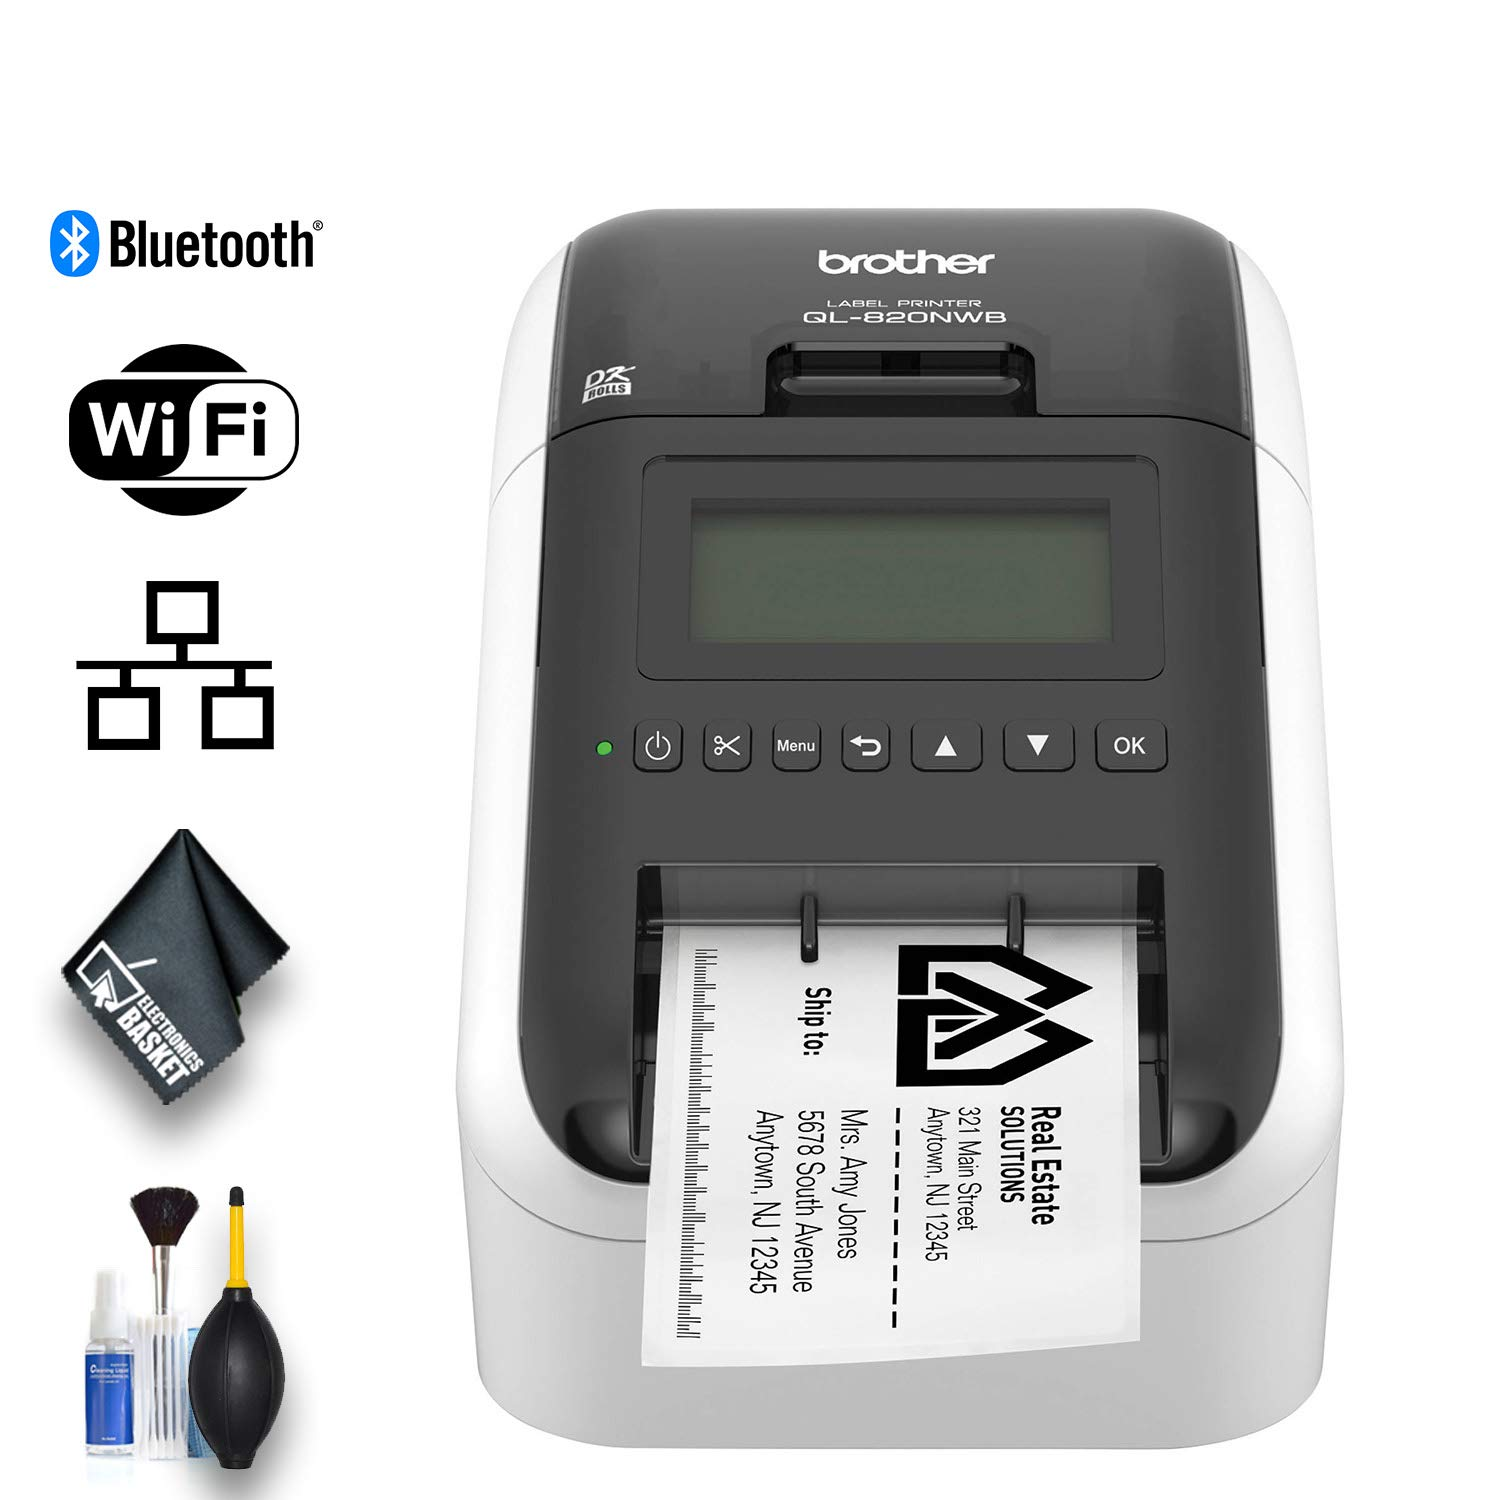 Brother QL-820NWB Professional Ultra Flexible Label Printer - Essential Bundle by Brother (Image #1)